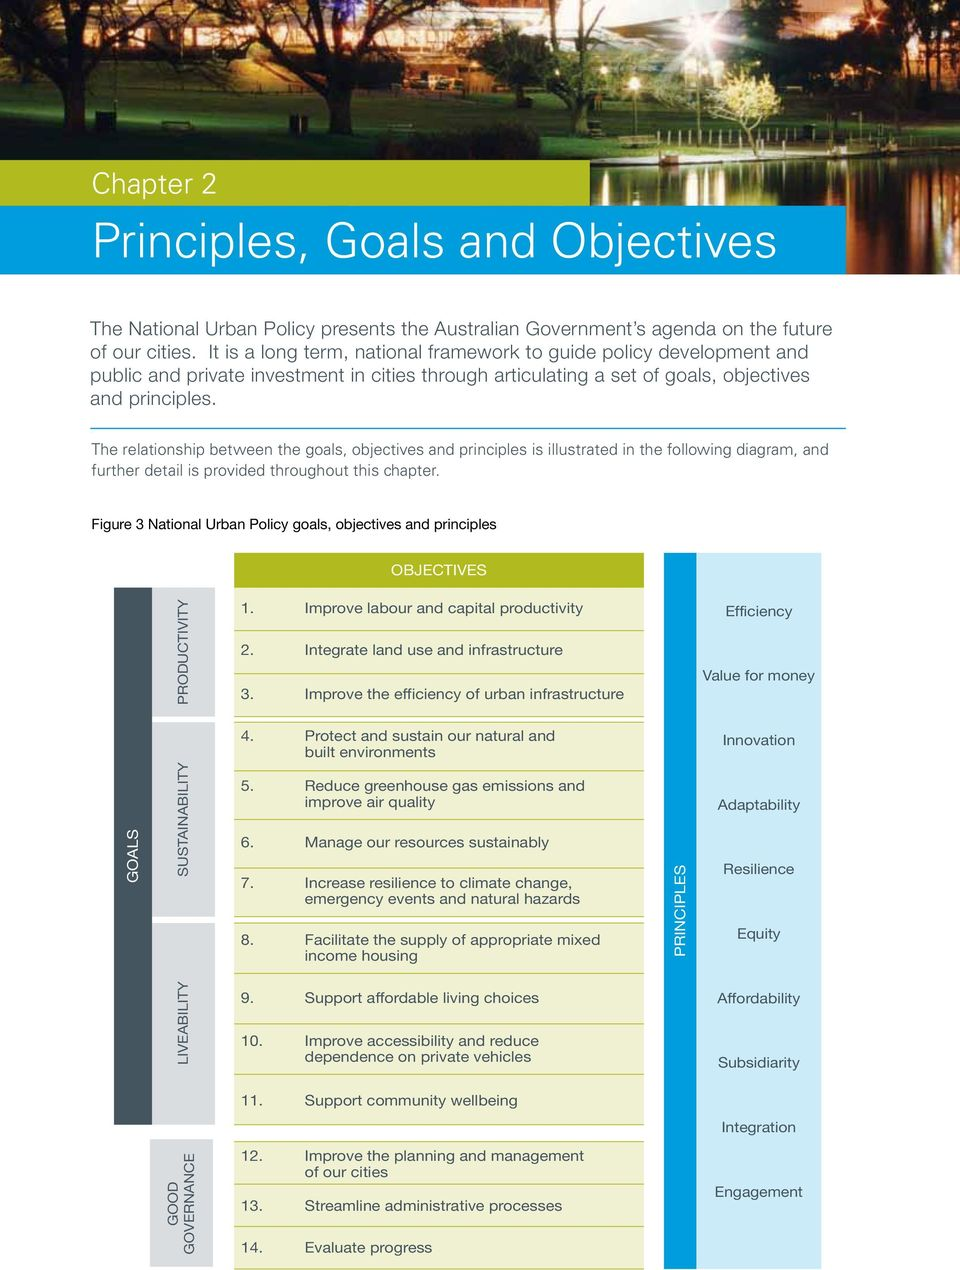 The relationship between the goals, objectives and principles is illustrated in the following diagram, and further detail is provided throughout this chapter.